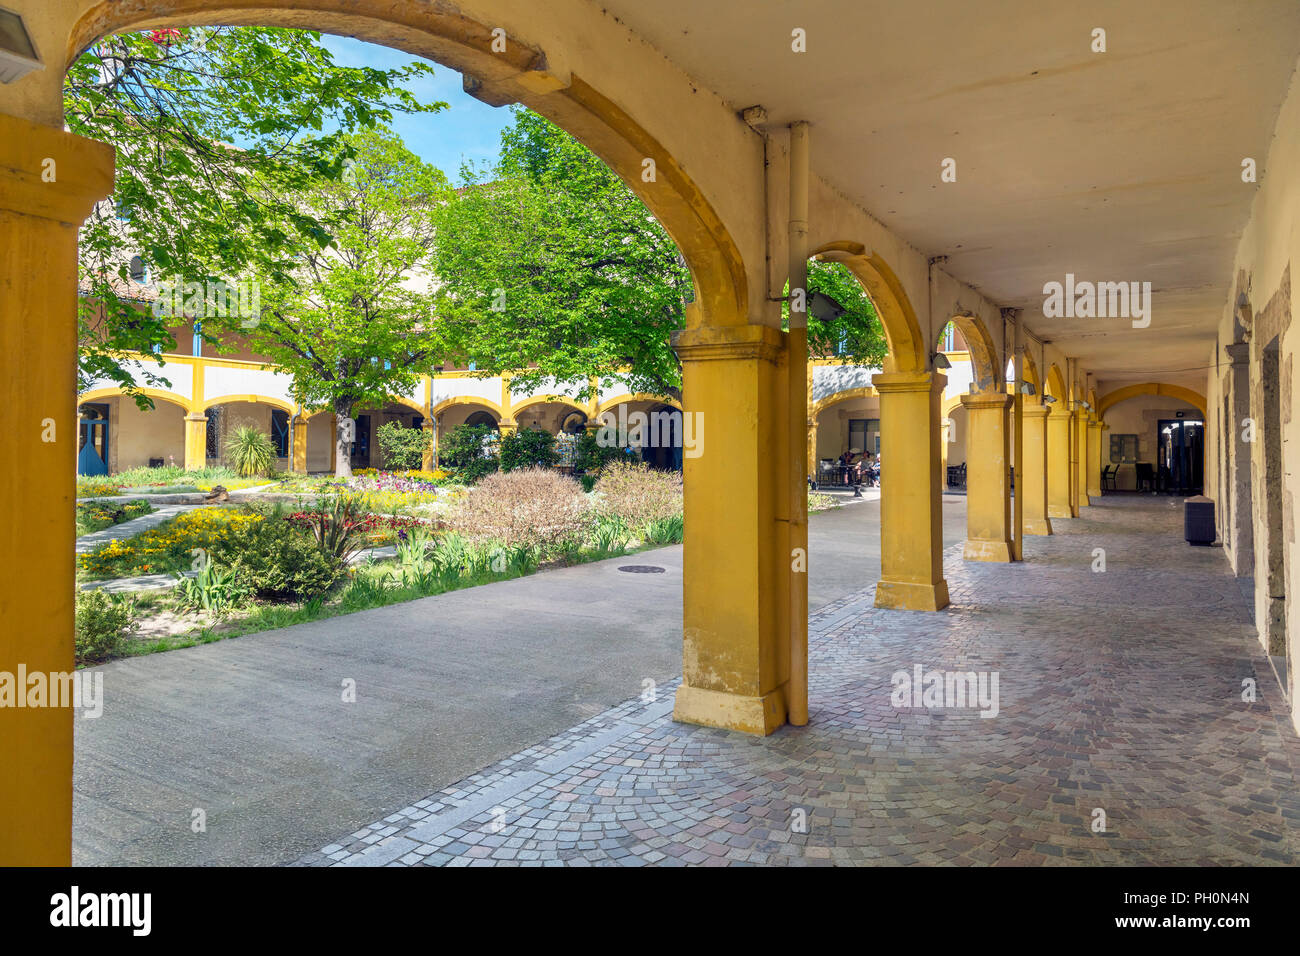 Portico in the courtyard of the Hospital at Arles, now called l'Espace Van Gogh, Arles, Provence, France - Stock Image